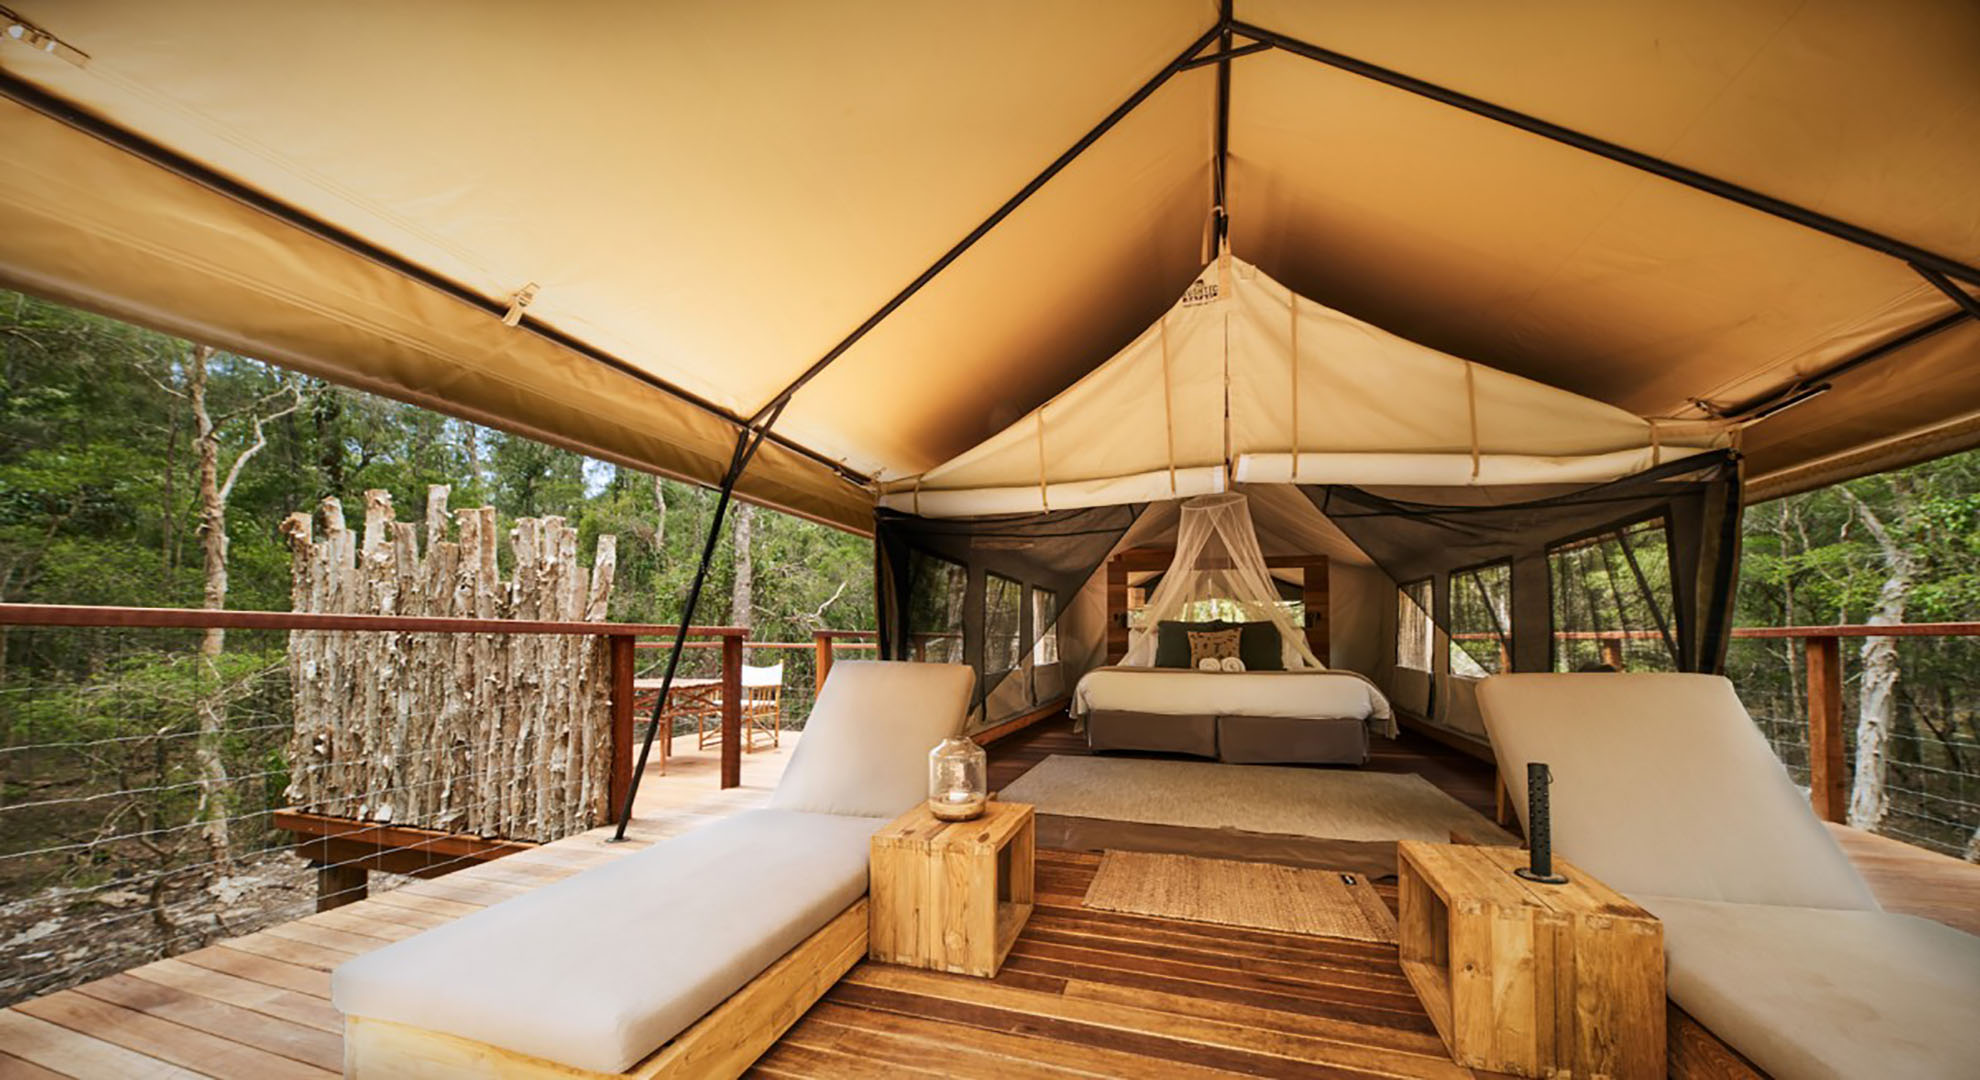 Glamping offers an experience of a peaceful setting, the perfect base from which to explore a nature lovers paradise